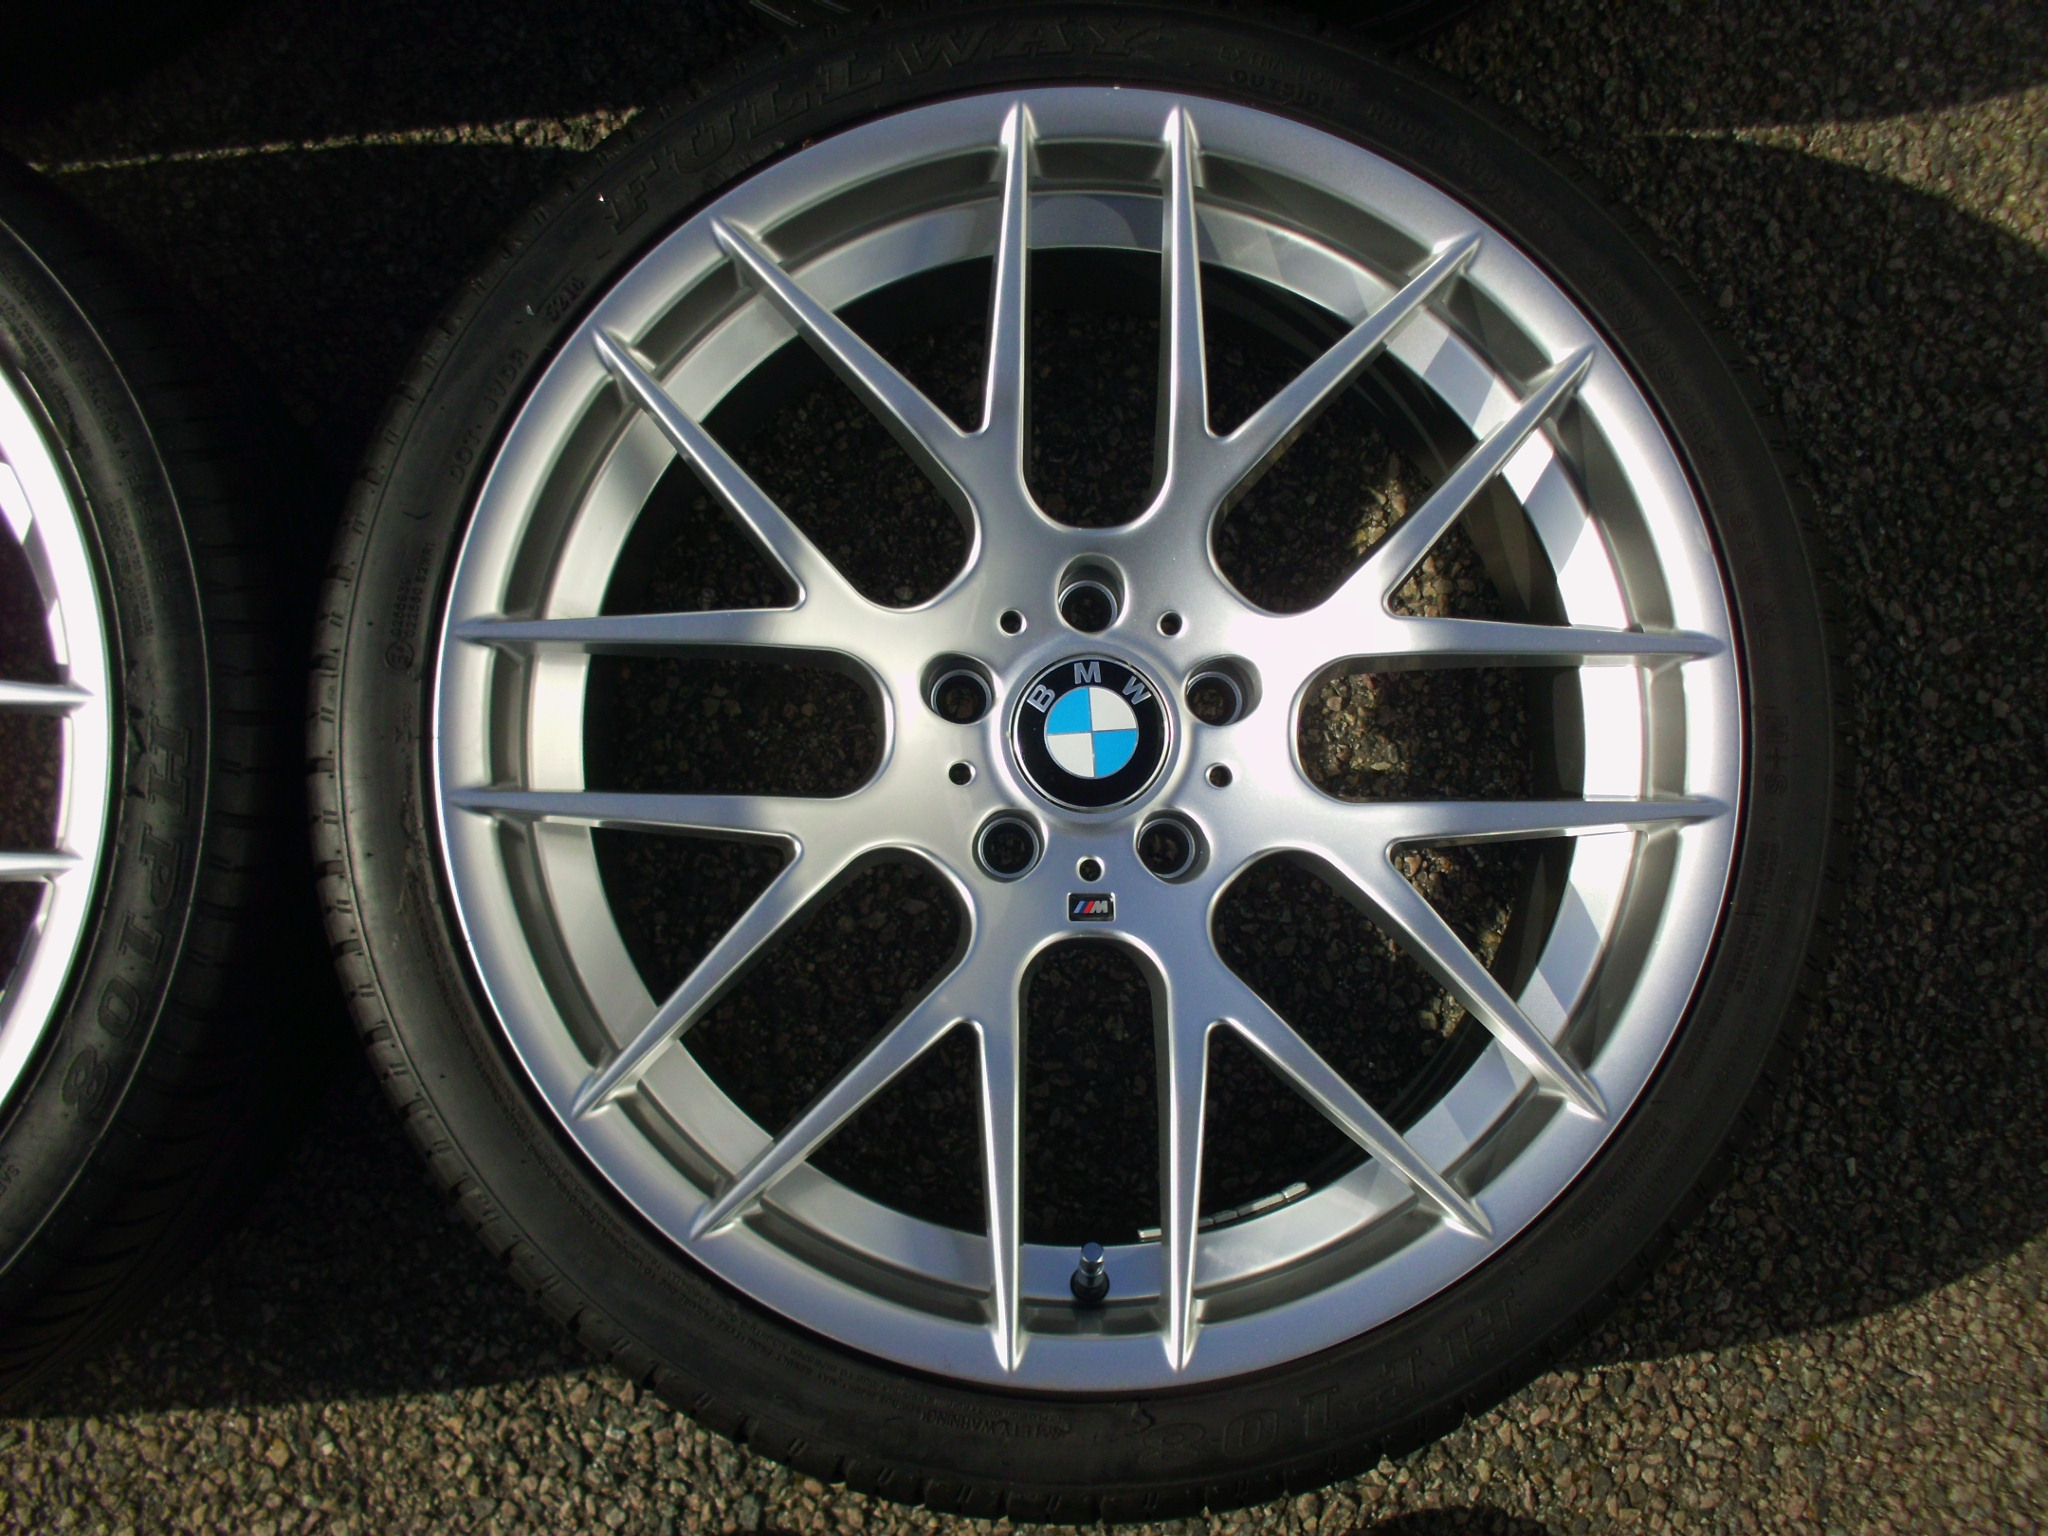 "NEW 20"" AVANT GARDE M359 Y SPOKE ALLOY WHEELS IN HYPER SILVER DEEPER CONCAVE 10.5"" REAR INC PART WORN TYRES"